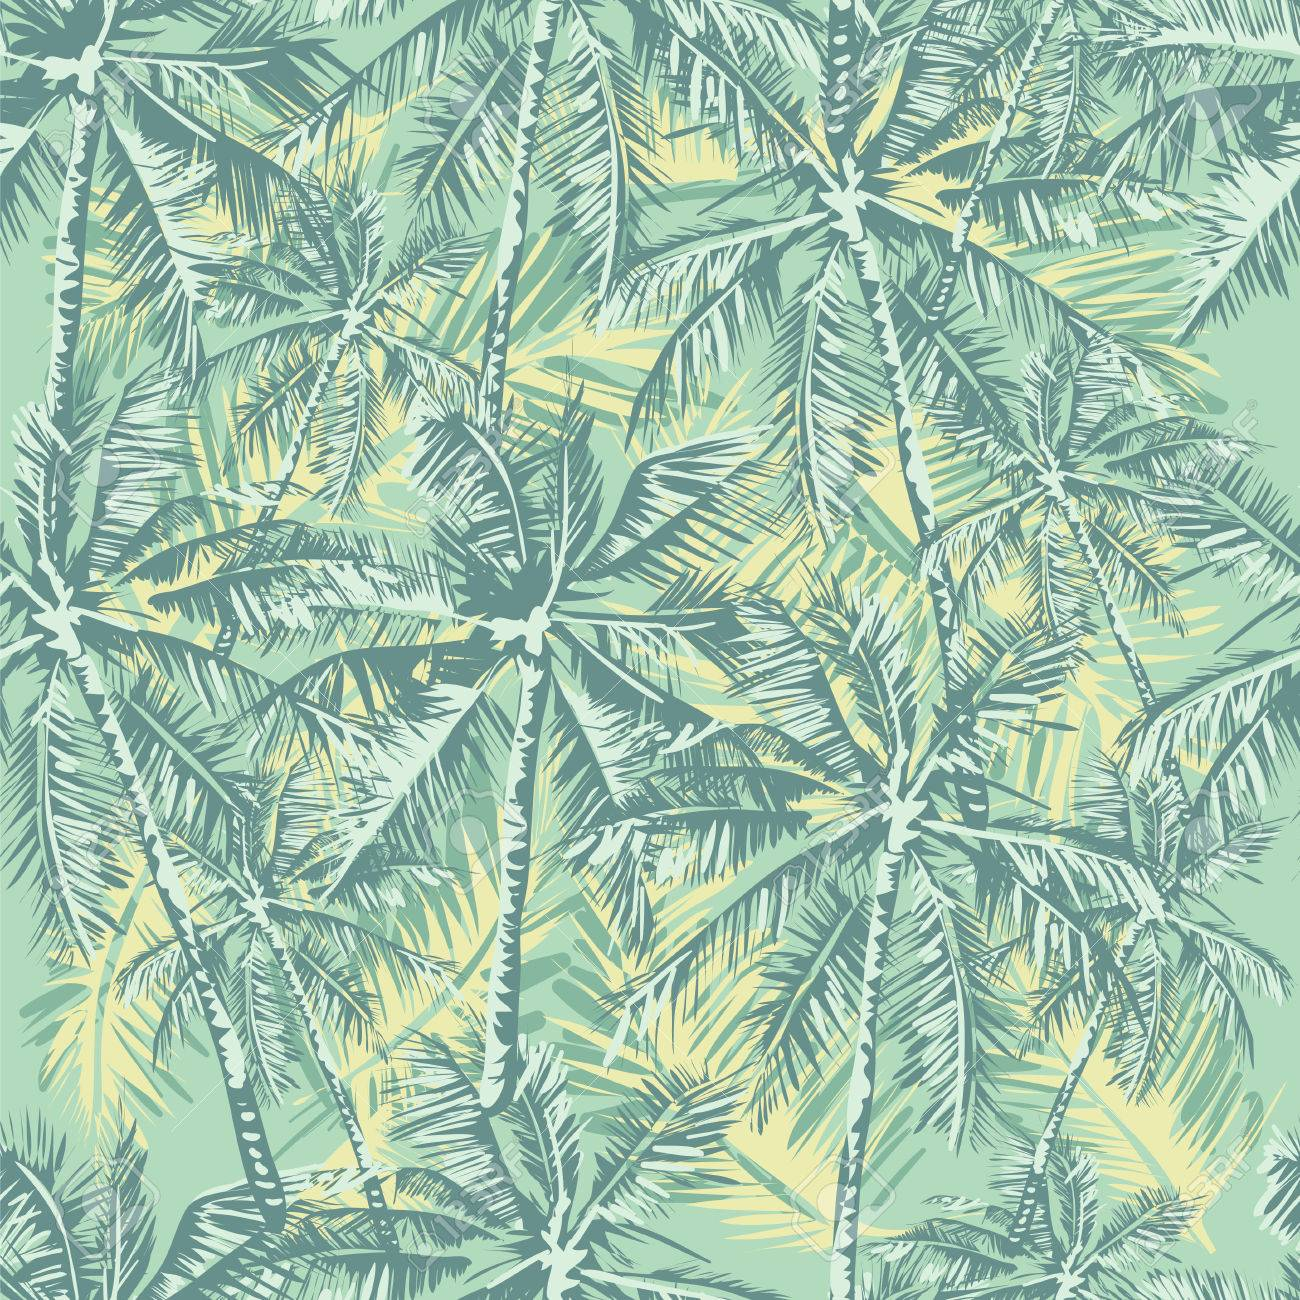 Seamless Vector Tropical Pattern Depicting Palm Trees In Vintage ...